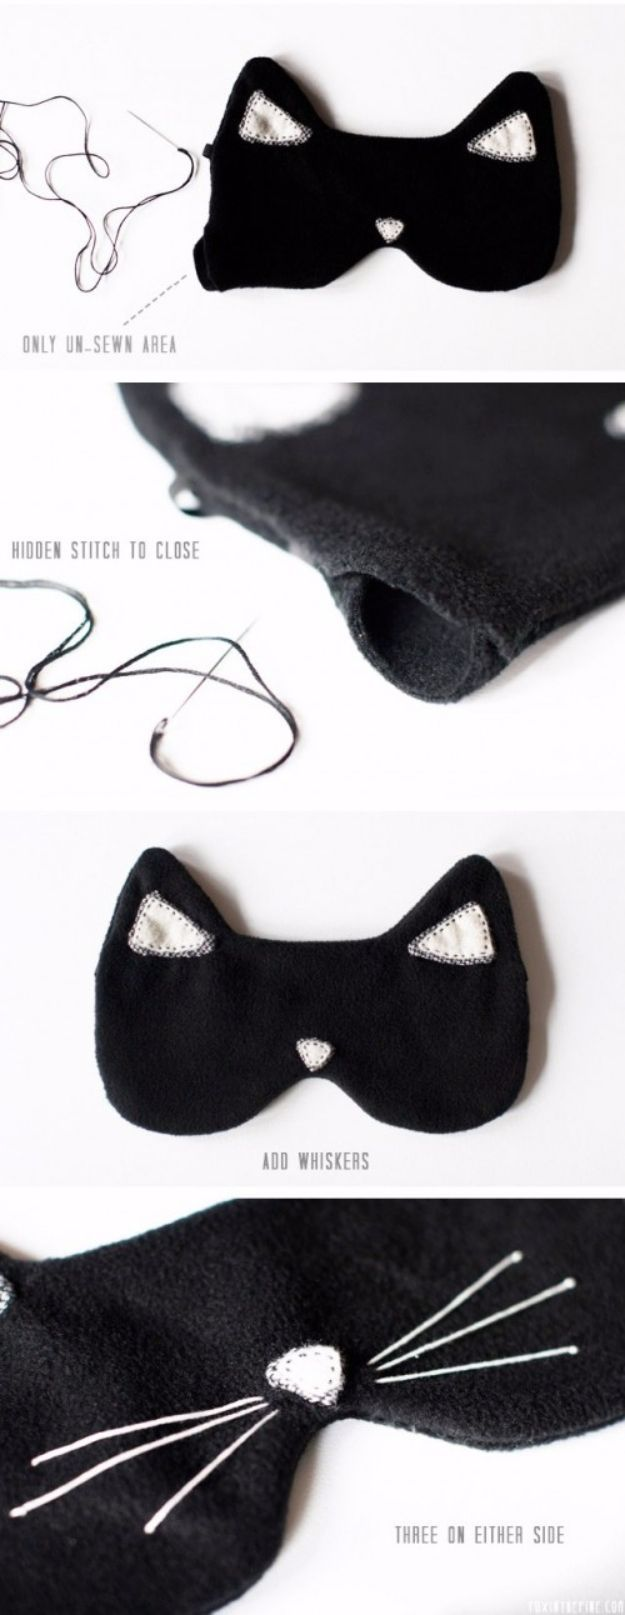 DIY Gifts To Sew For Friends - DIY Cat Eye Sleeping Mask - Quick and Easy Sewing Projects and Free Patterns for Best Gift Ideas and Presents - Creative Step by Step Tutorials for Beginners - Cute Home Decor, Accessories, Kitchen Crafts and DIY Fashion Ideas http://diyjoy.com/diy-gifts-to-sew-for-friends